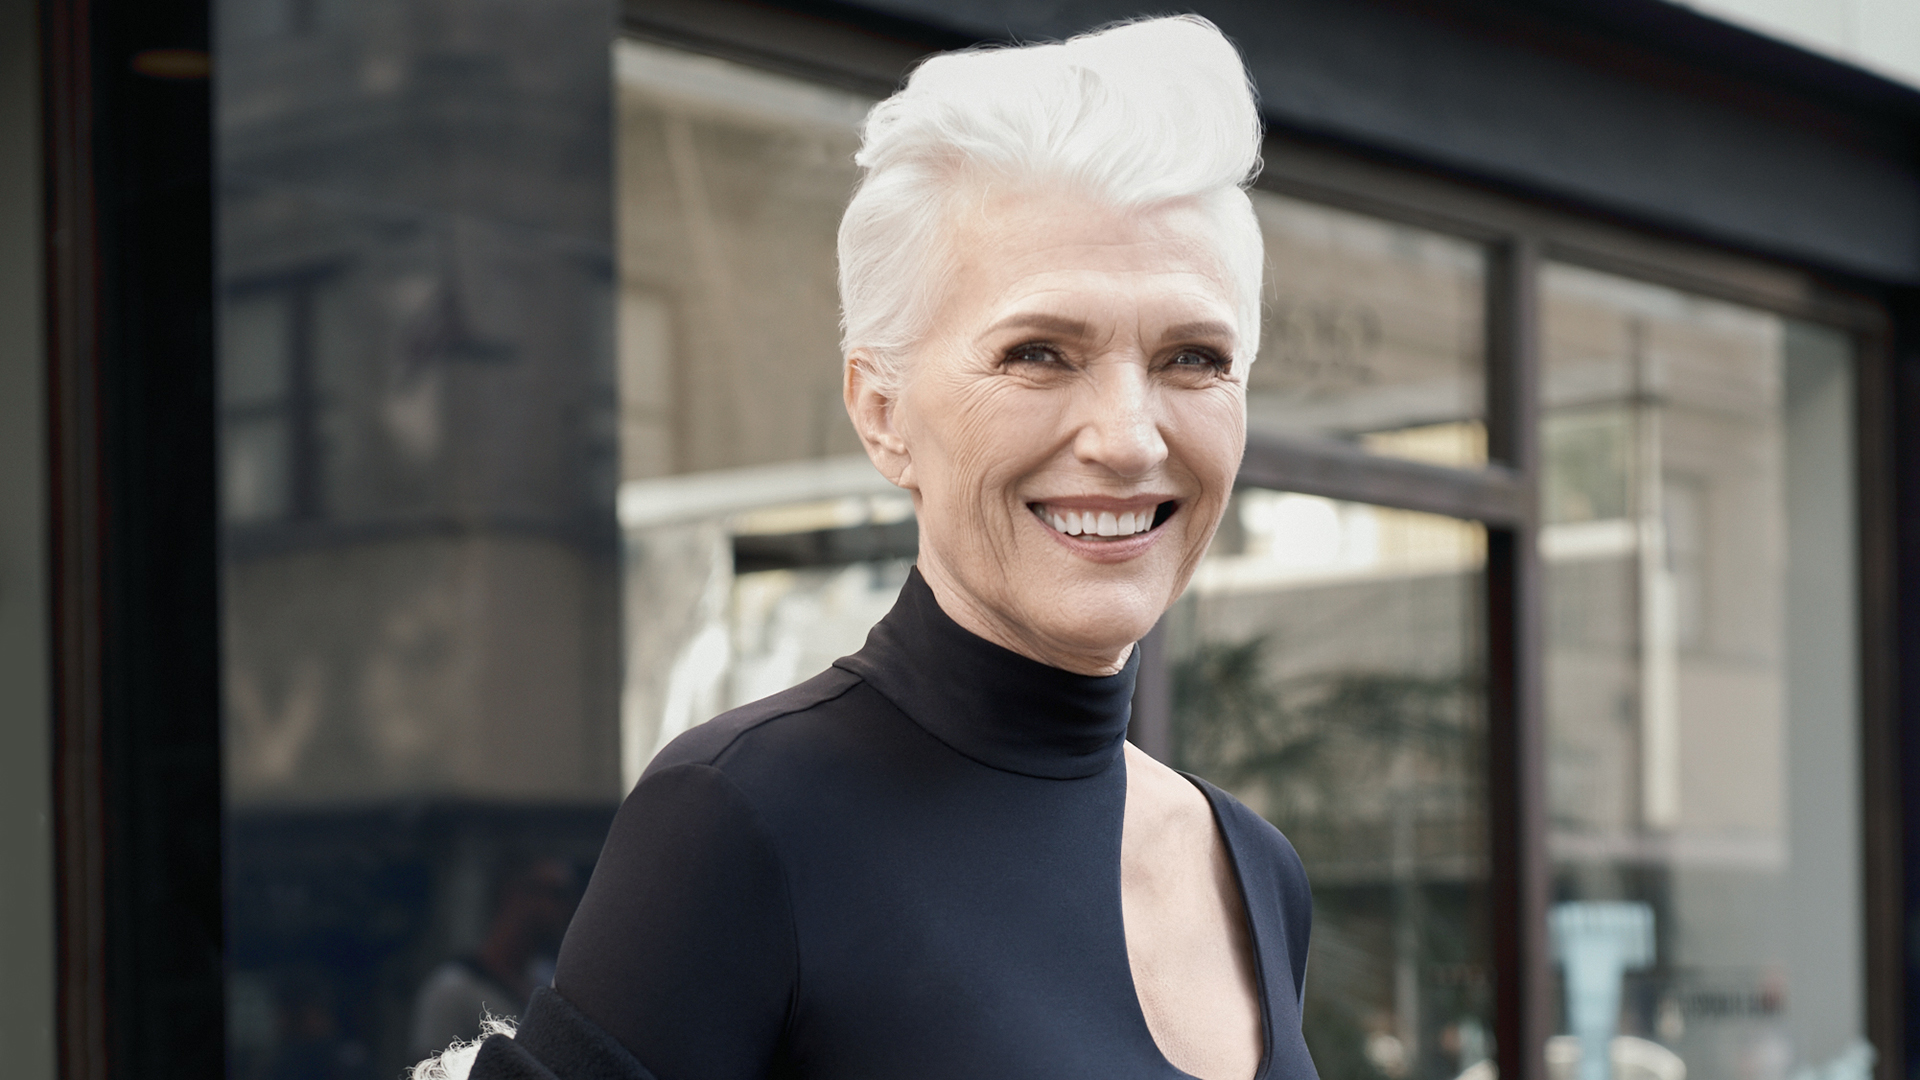 The newest CoverGirl is 69-year-old model Maye Musk